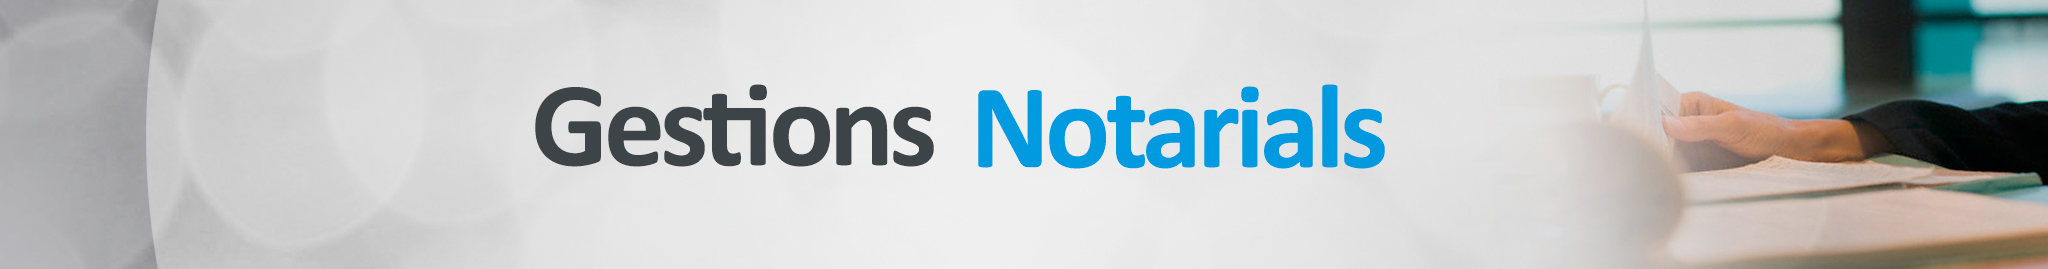 Gestions Notarials